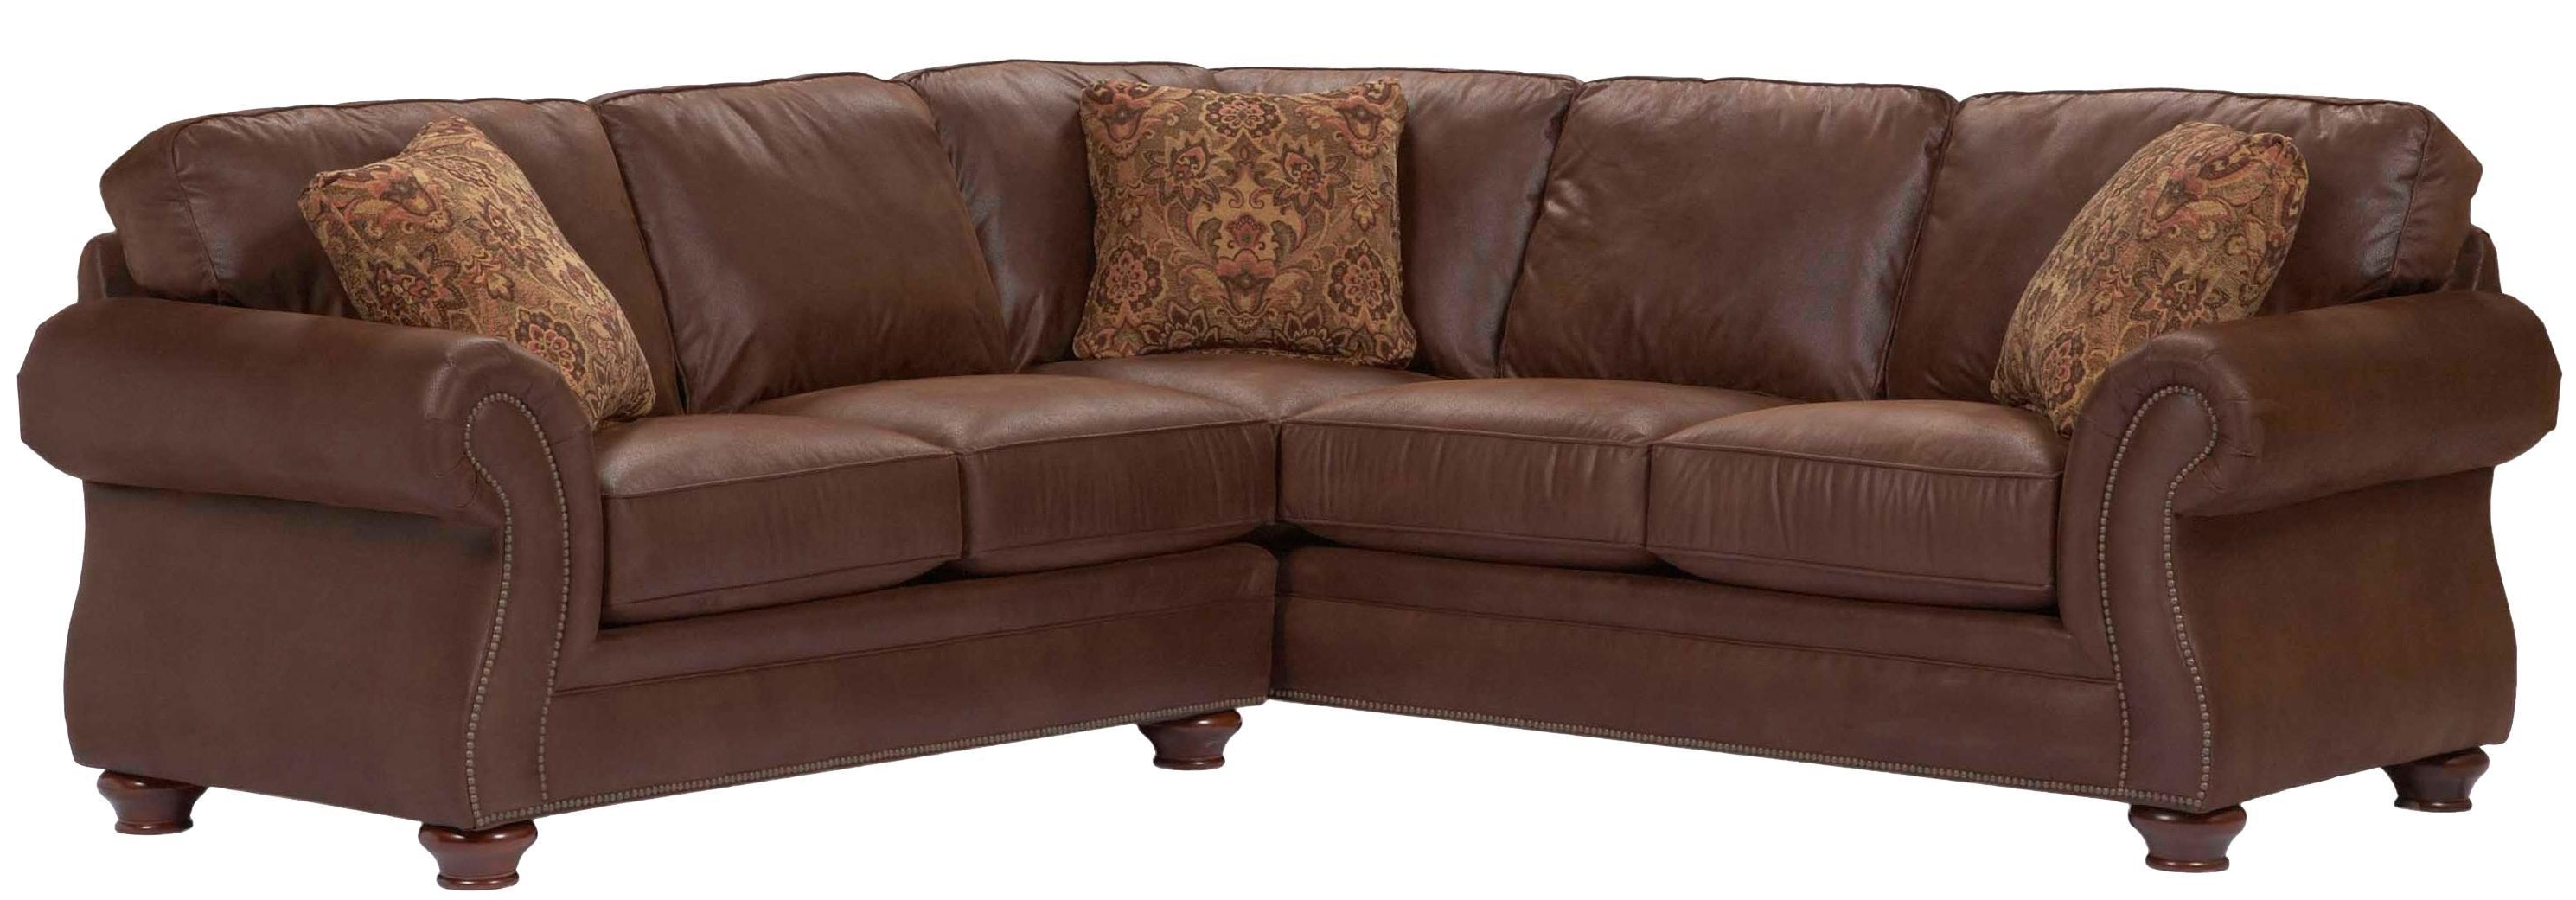 Most Recent Broyhill Furniture Laramie 2 Piece Corner Sectional Sofa – Ahfa Pertaining To Quincy Il Sectional Sofas (View 7 of 20)